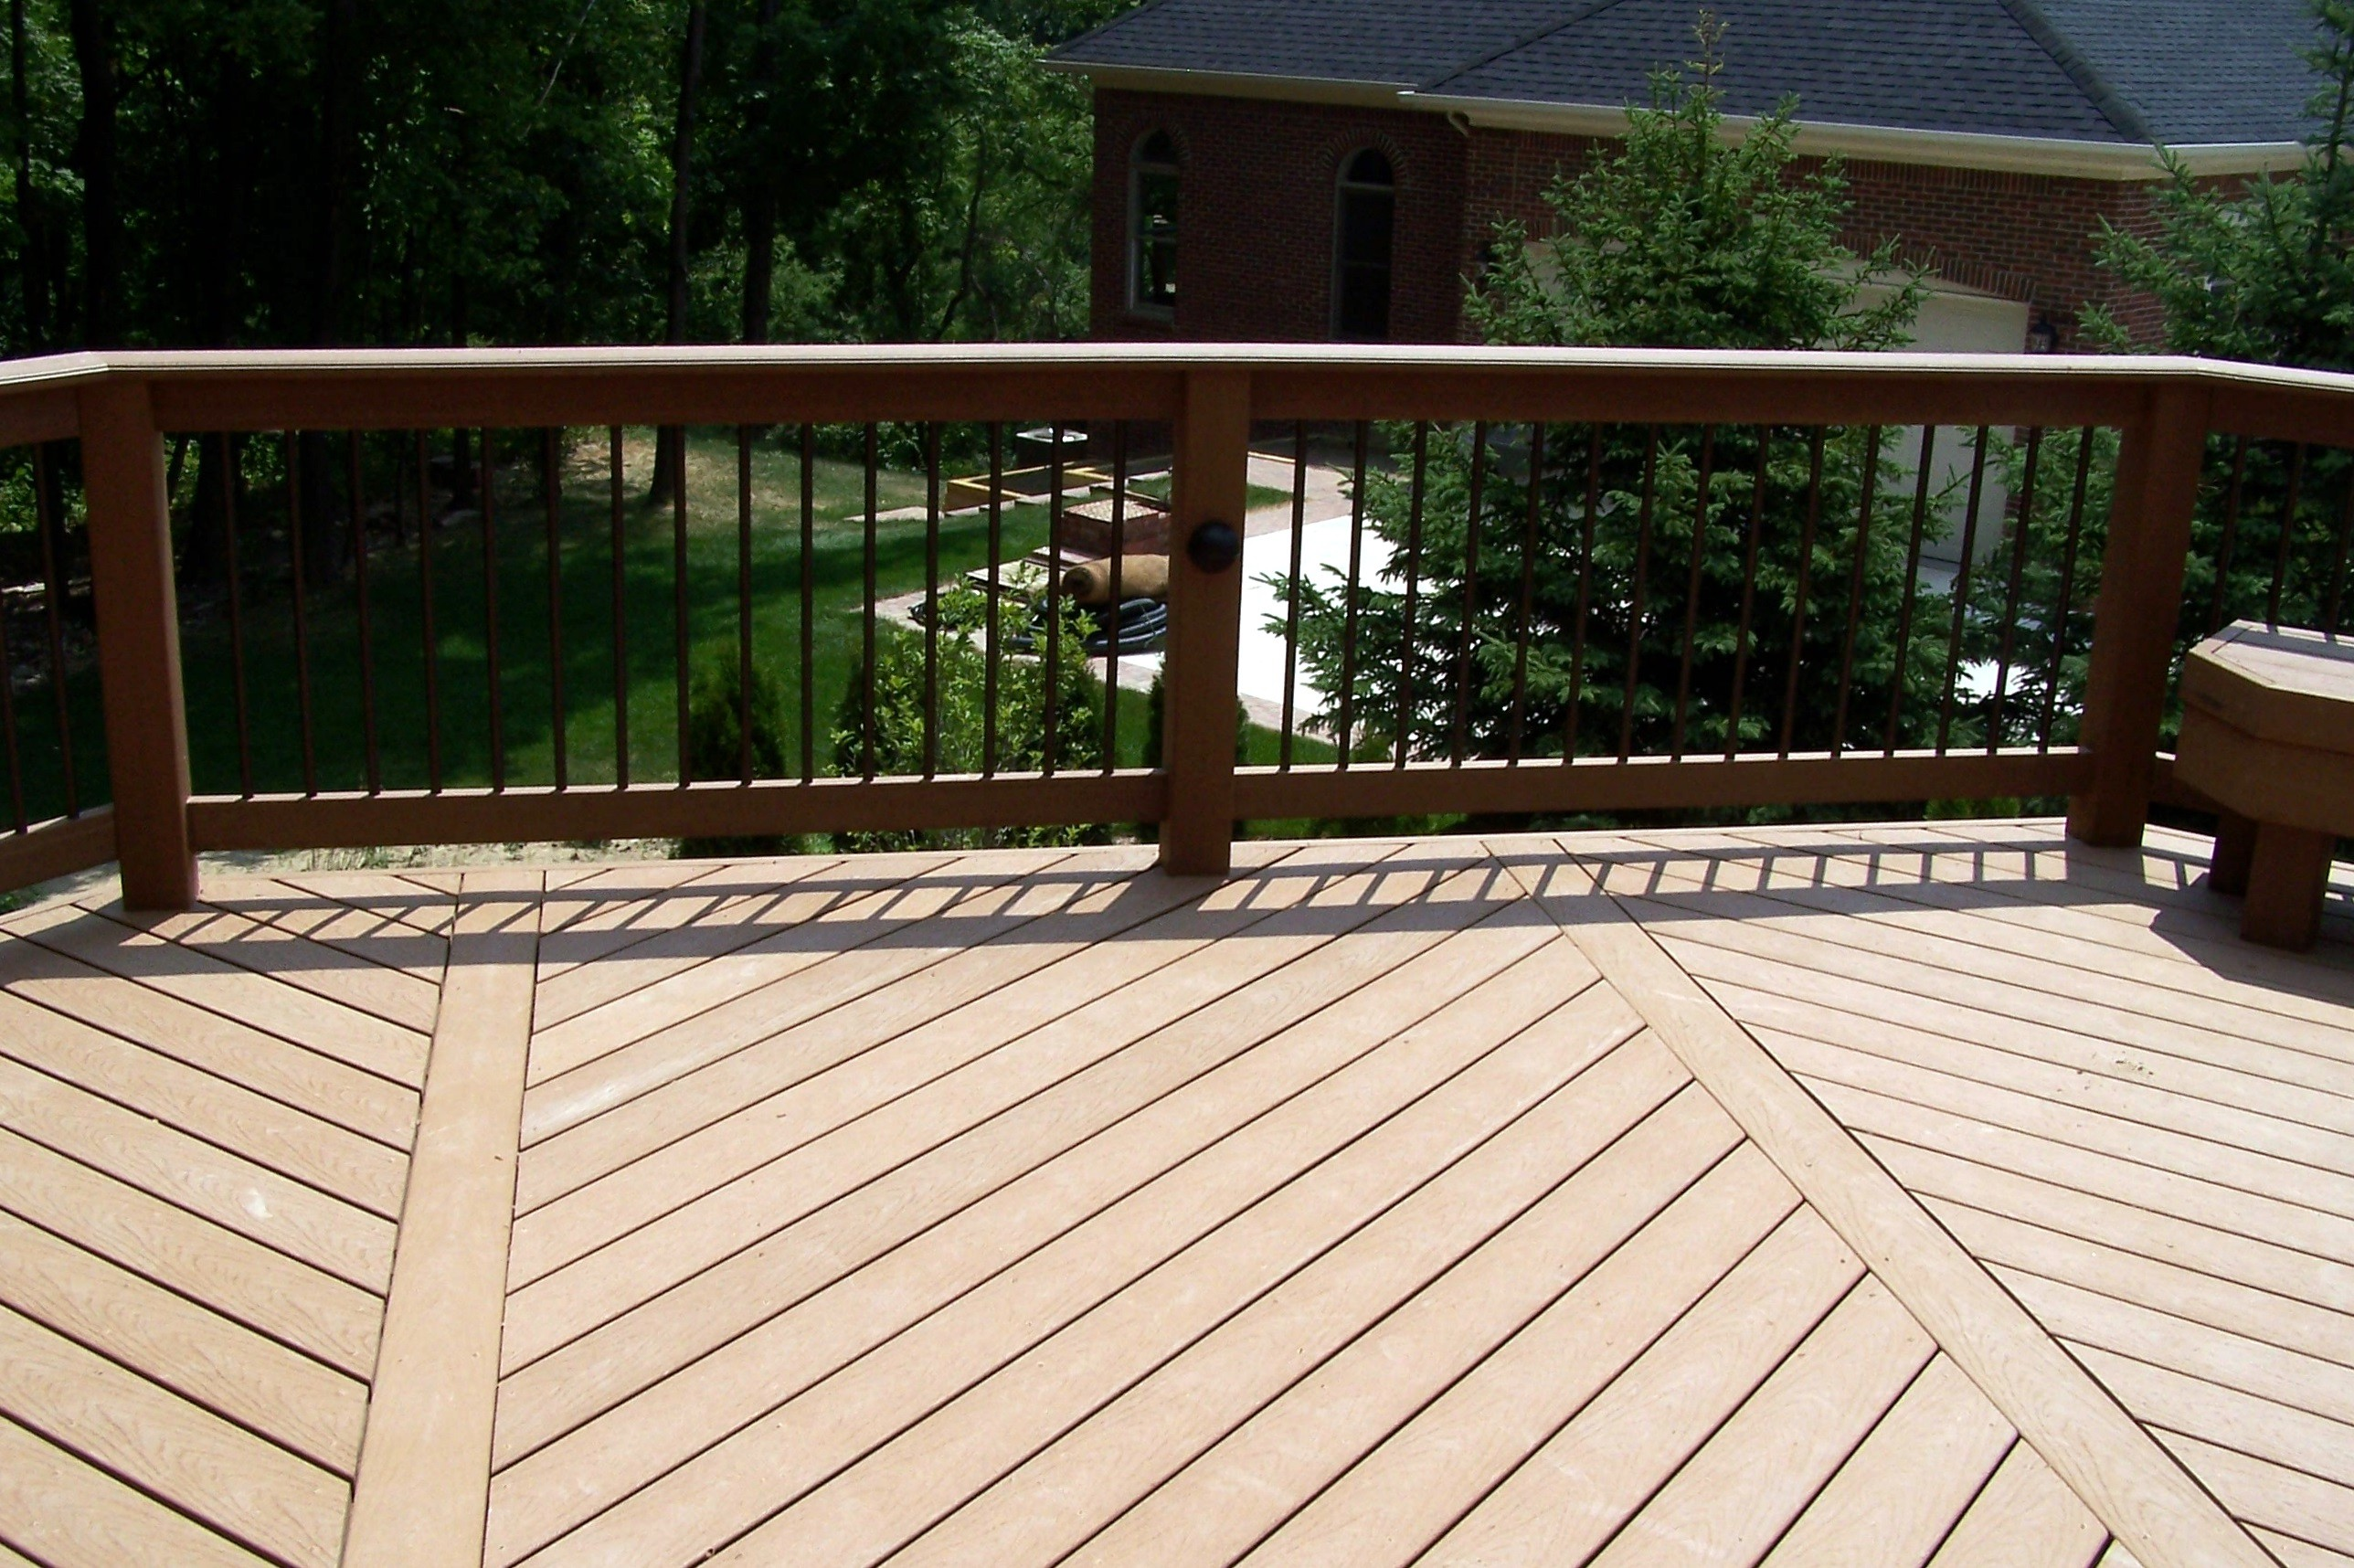 southeastern michigan deck lighting deck railings photo. Black Bedroom Furniture Sets. Home Design Ideas